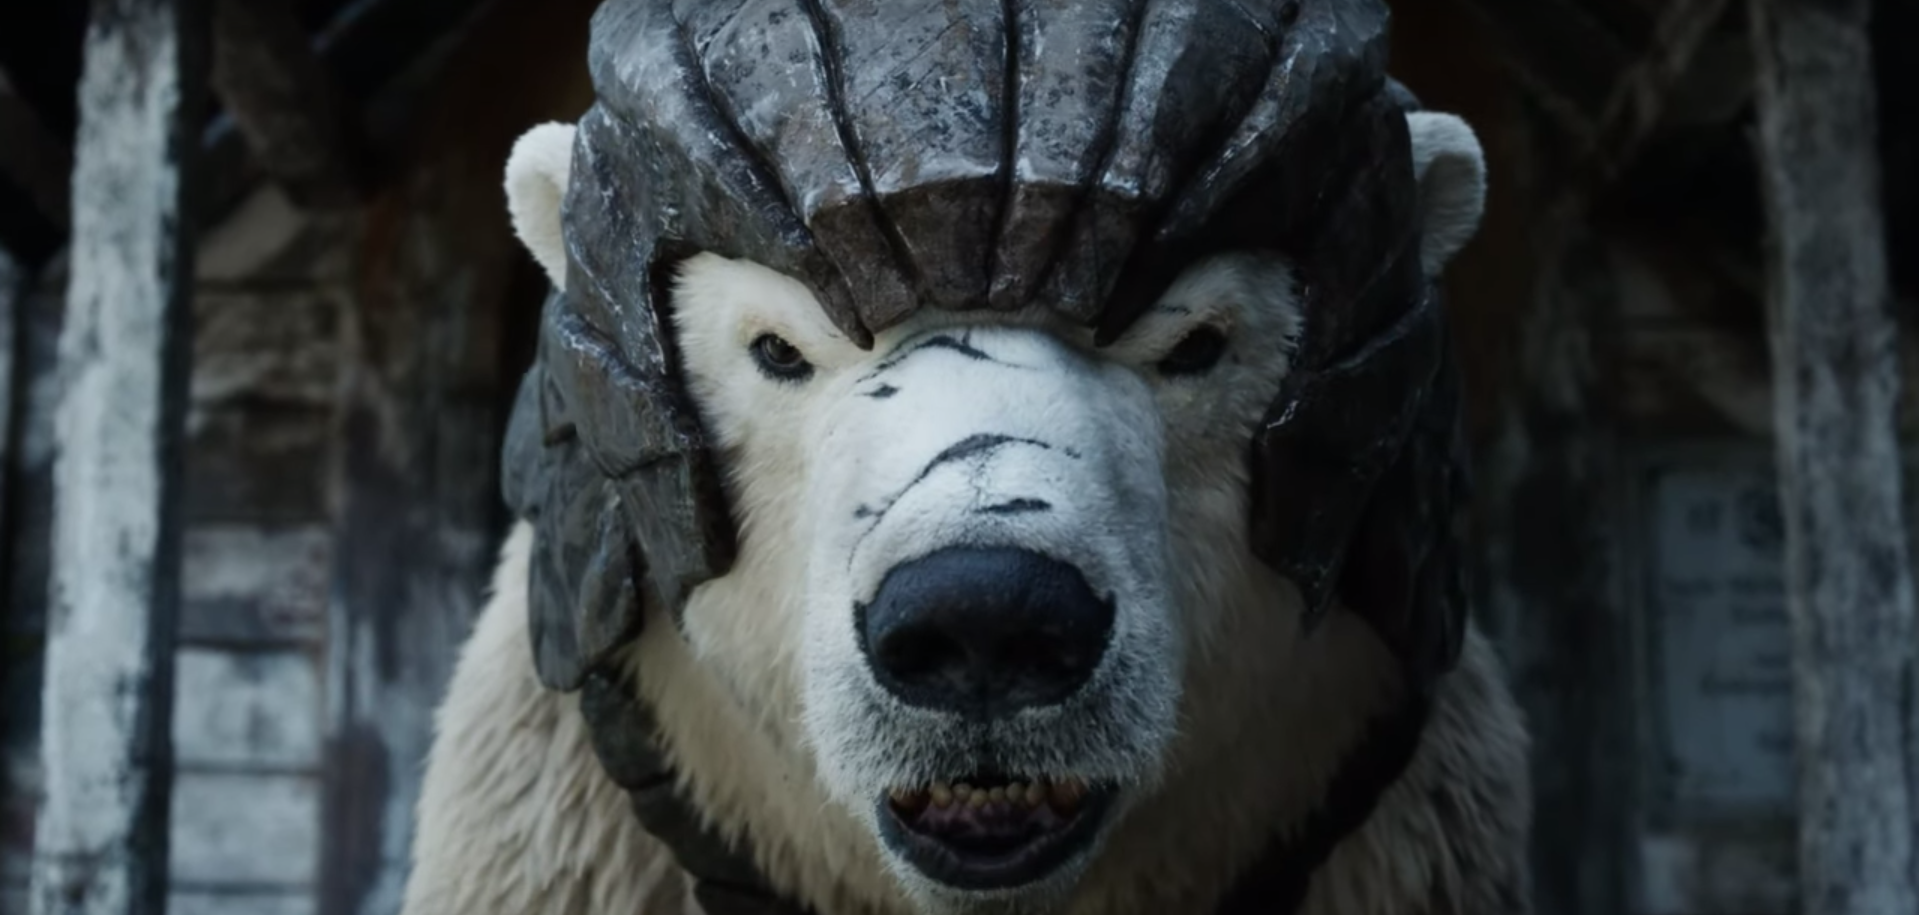 A war is brewing in this trailer for HBO's fantasy series